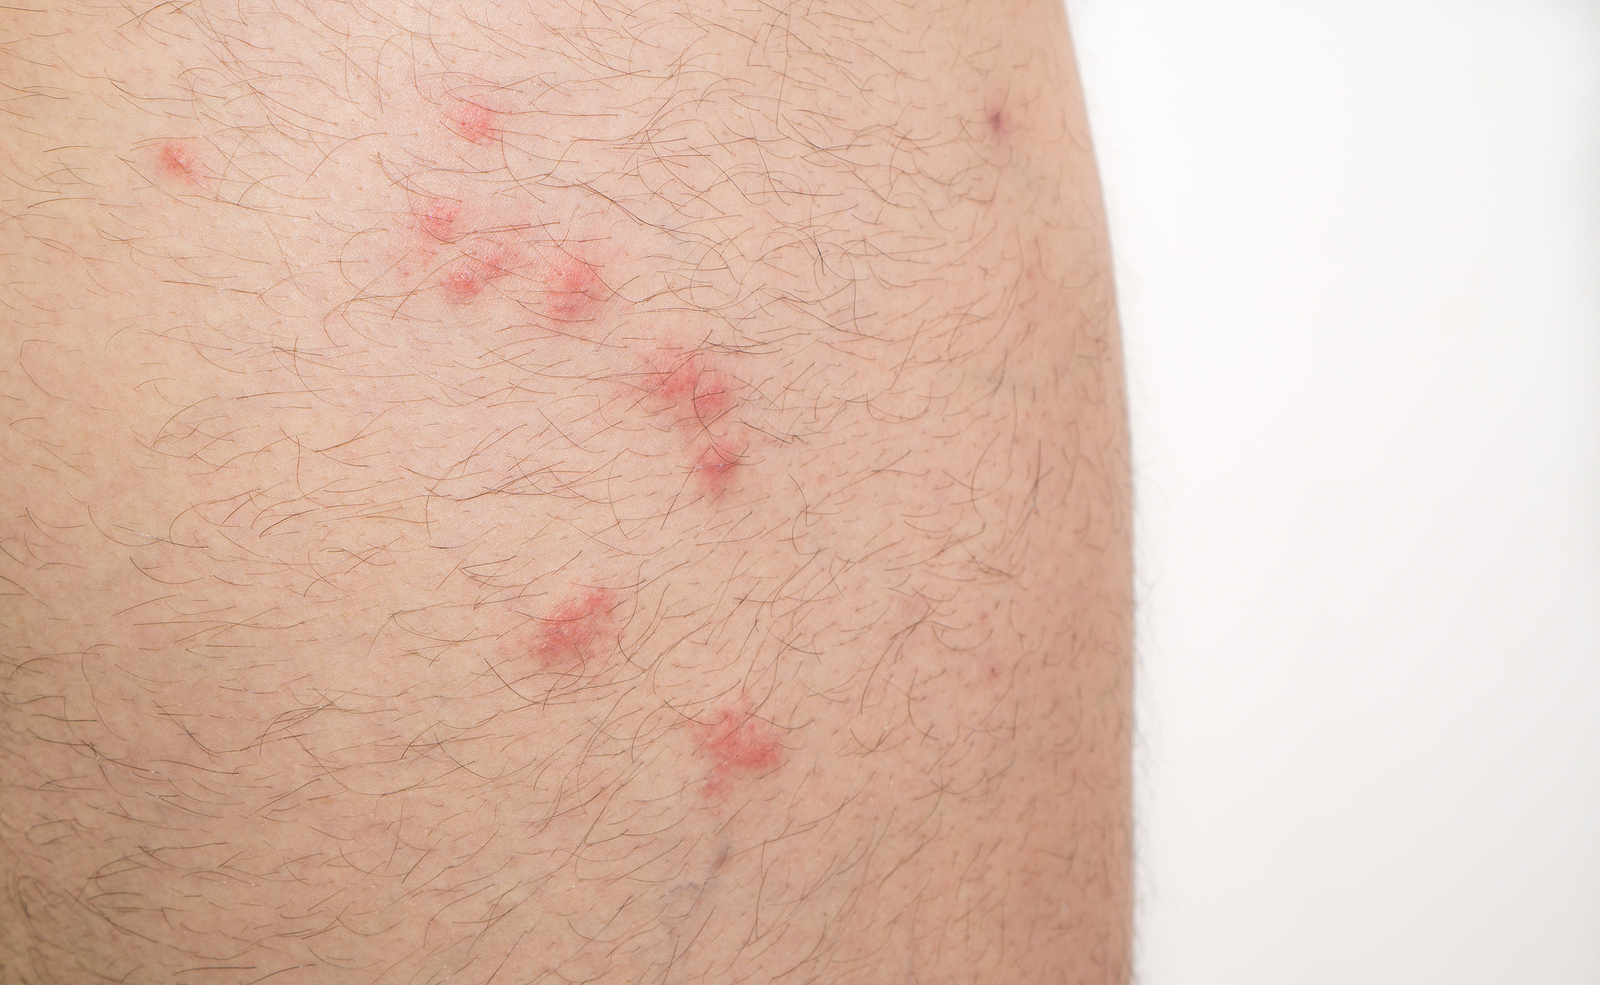 Don't Confuse Bed Bug Bites with These Commonly Misdiagnosed Conditions